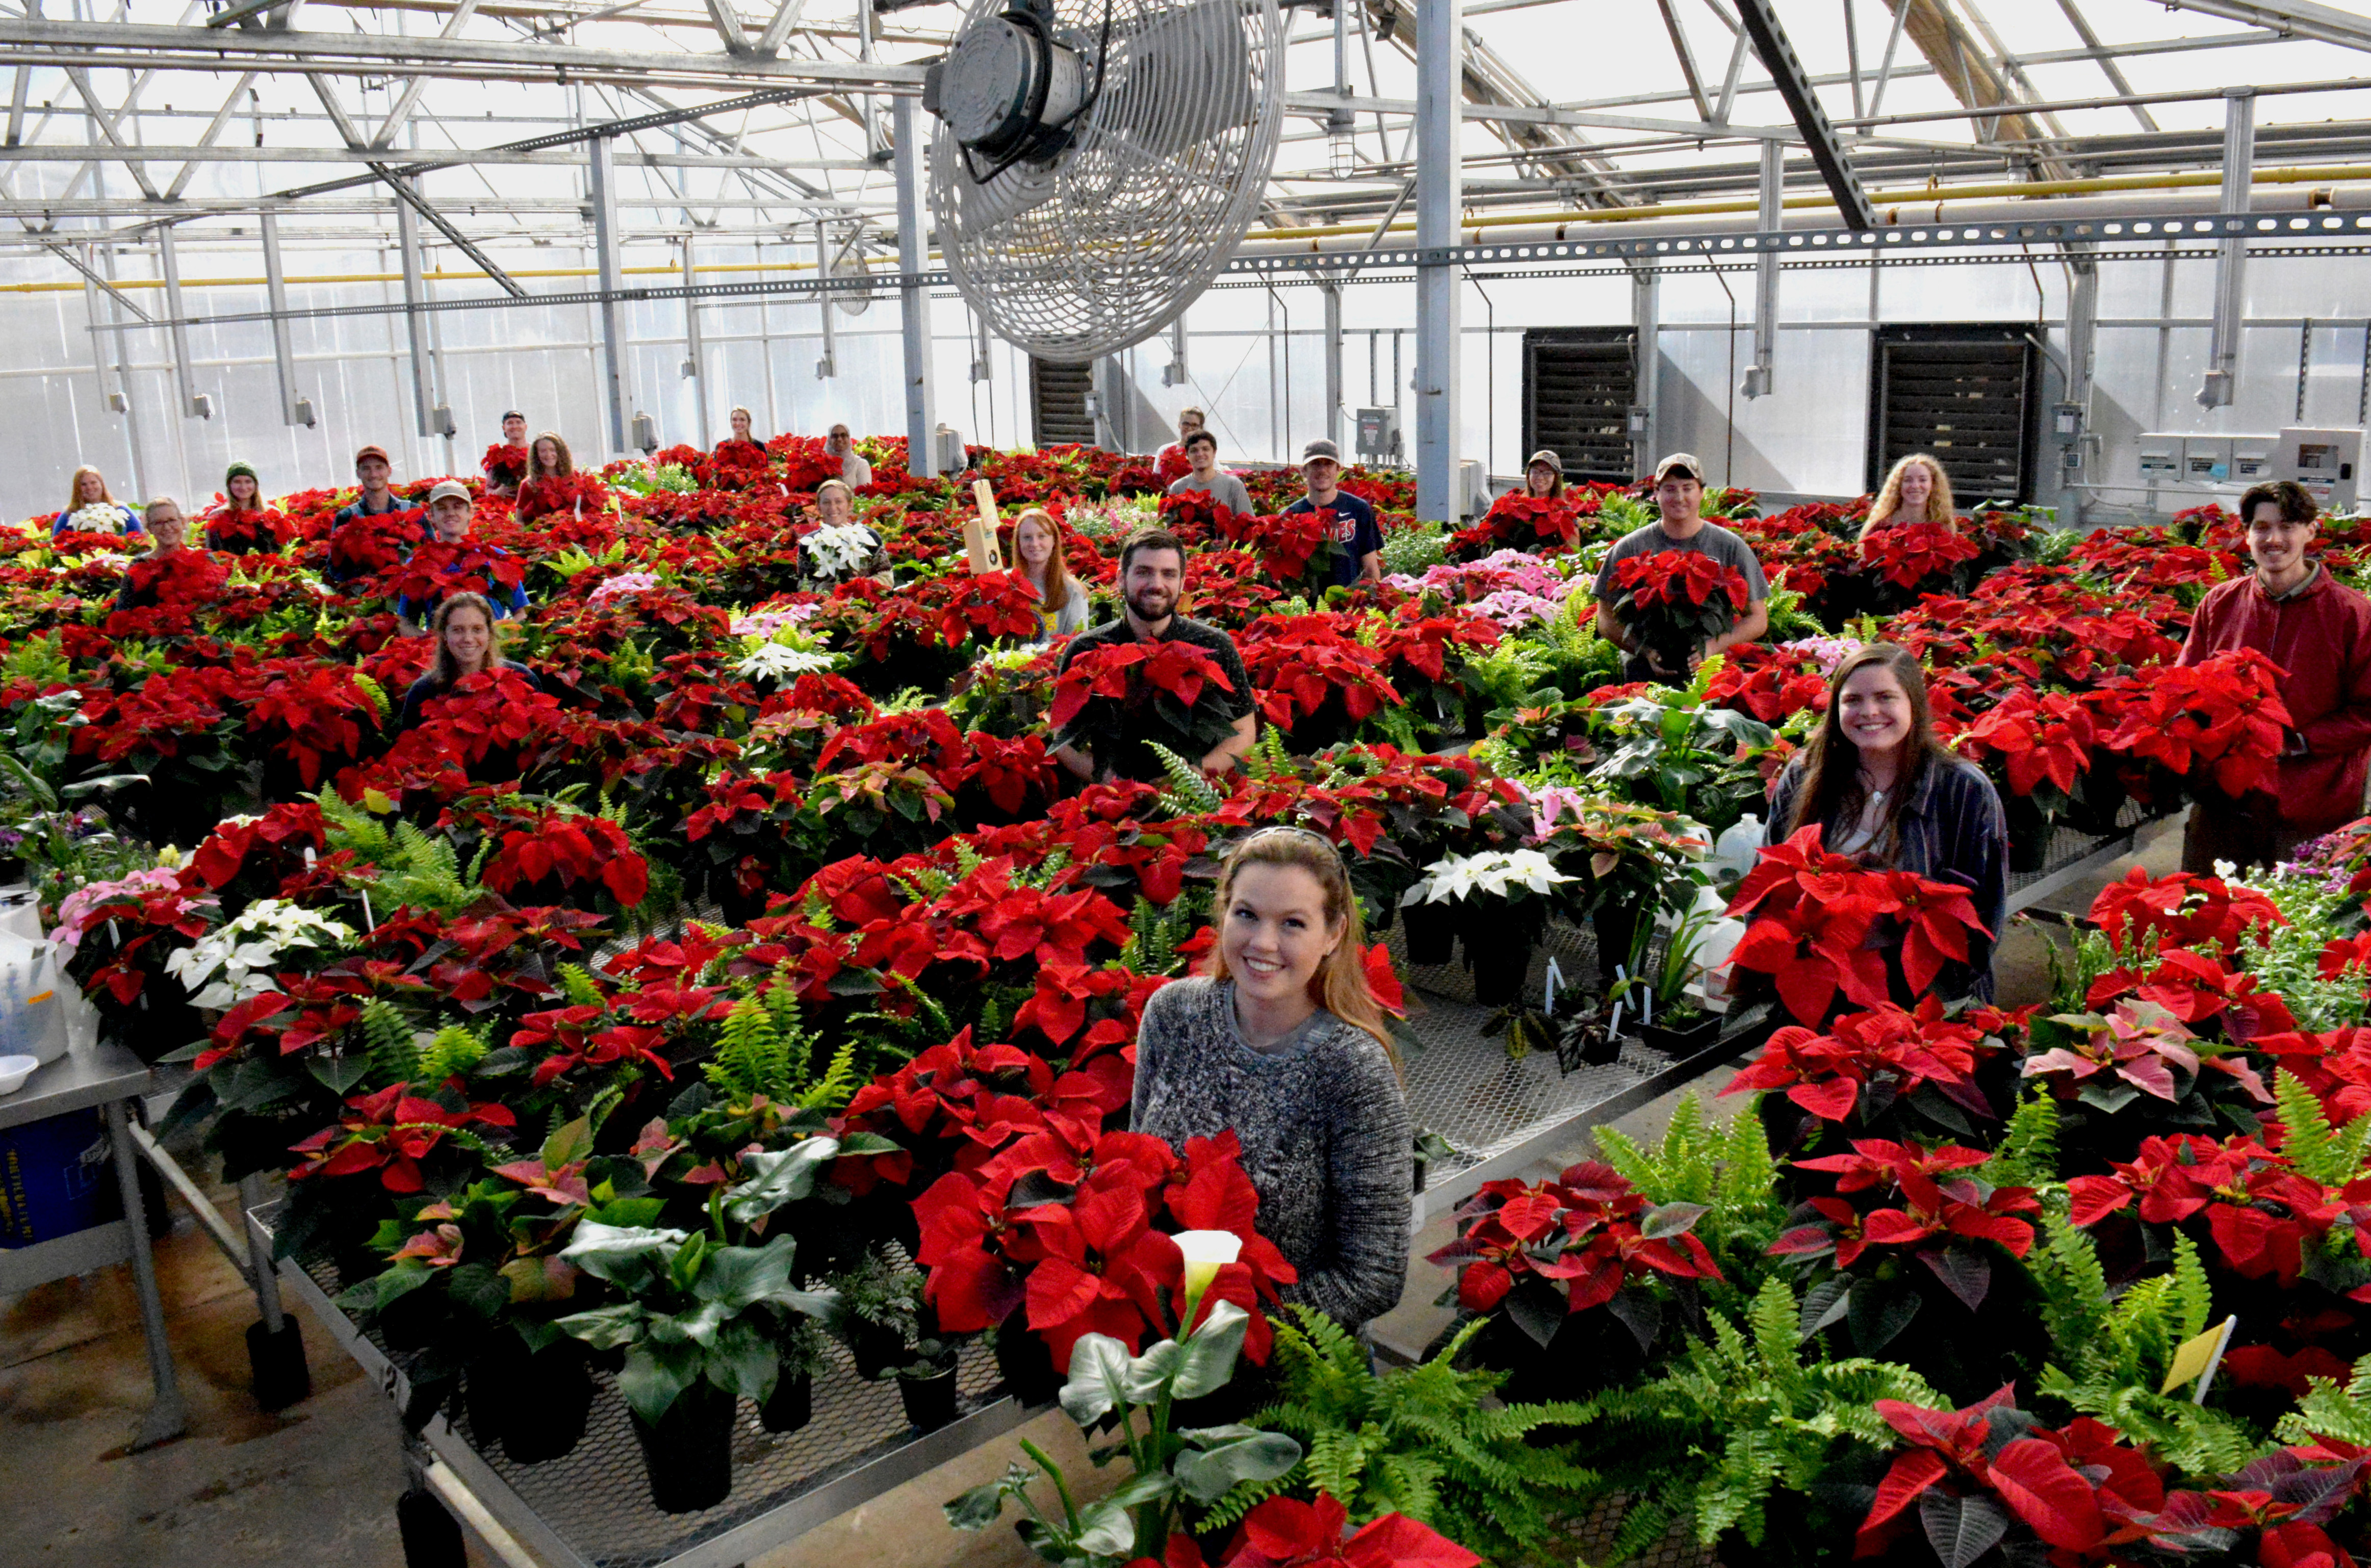 Students in University of Georgia College of Agricultural and Environmental Sciences Horticulture 4070 Greenhouse Management class pose with their bumper crop of poinsettias.